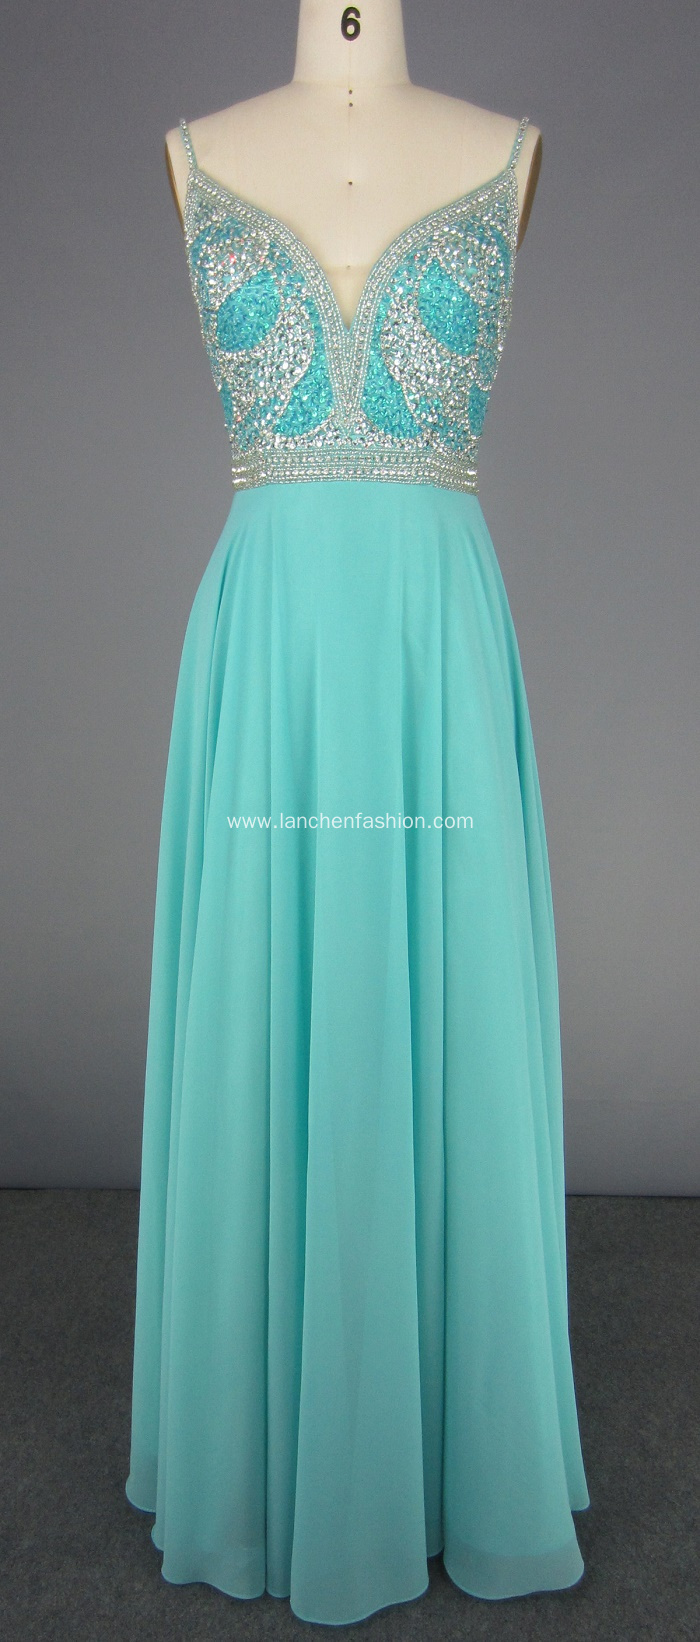 Spaghetti Strap Beading V-neck Backless Prom Dress